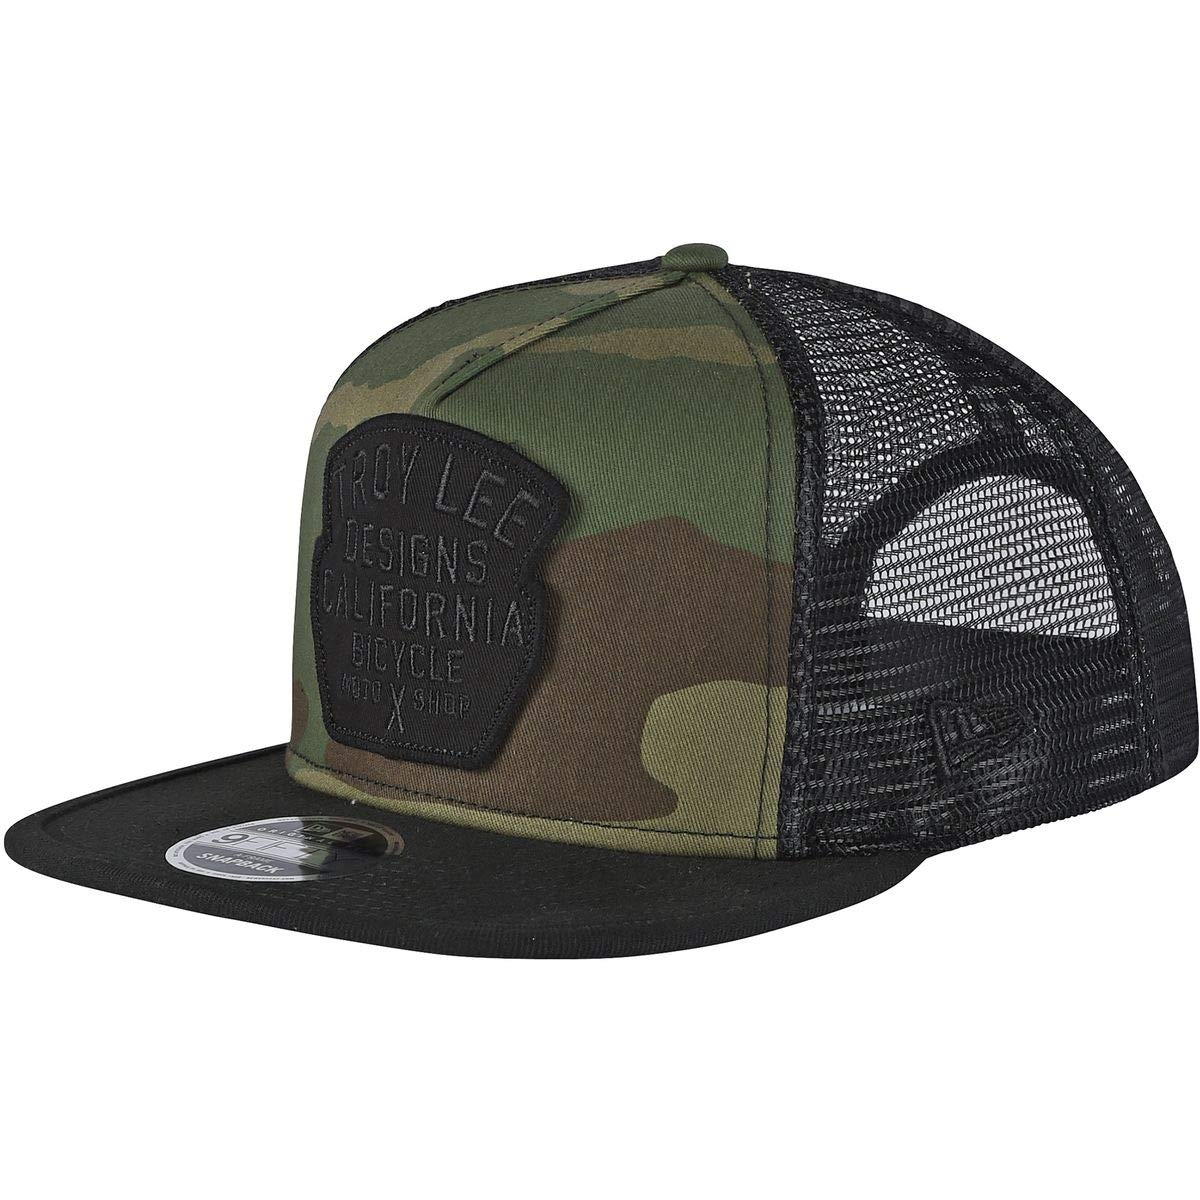 7a32fc44535 Troy Lee Designs Army Granger Camo Trucker Cap  Troy Lee Designs   Amazon.co.uk  Clothing